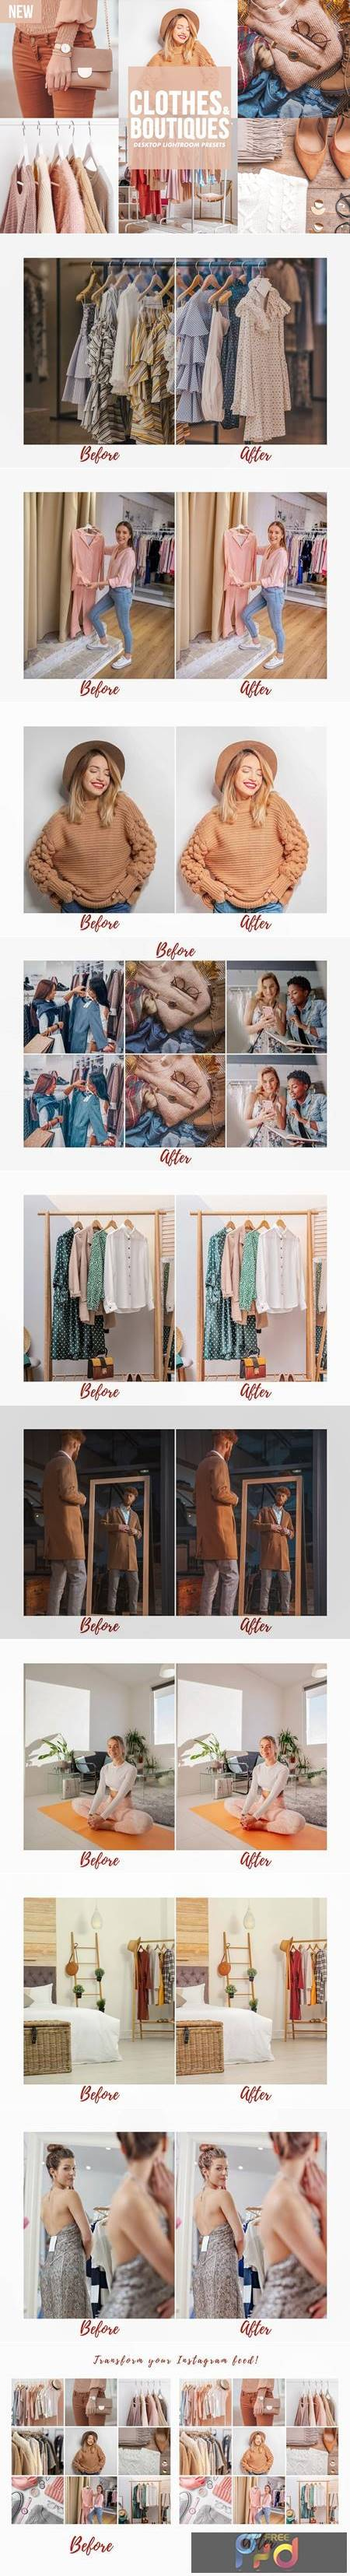 Desktop Lightroom Presets CLOTHES 4841647 1